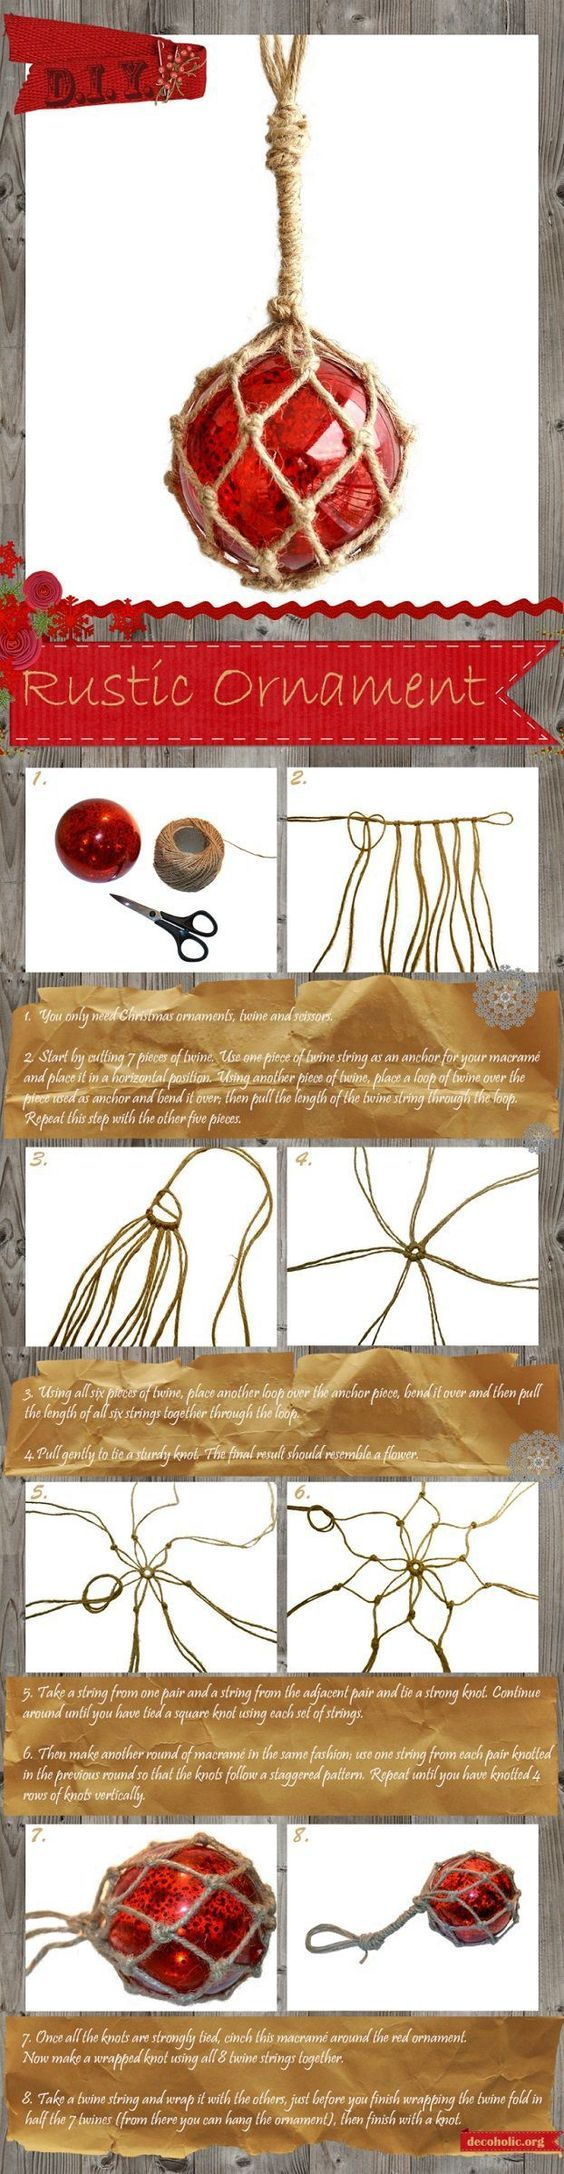 68 Best Fishing Images On Pinterest Knot Tying Diagrams Http Wwwfintalkcom Fishingknots Palomarknot Diy Christmas Clear Glass Ornament With White Twine Macrame